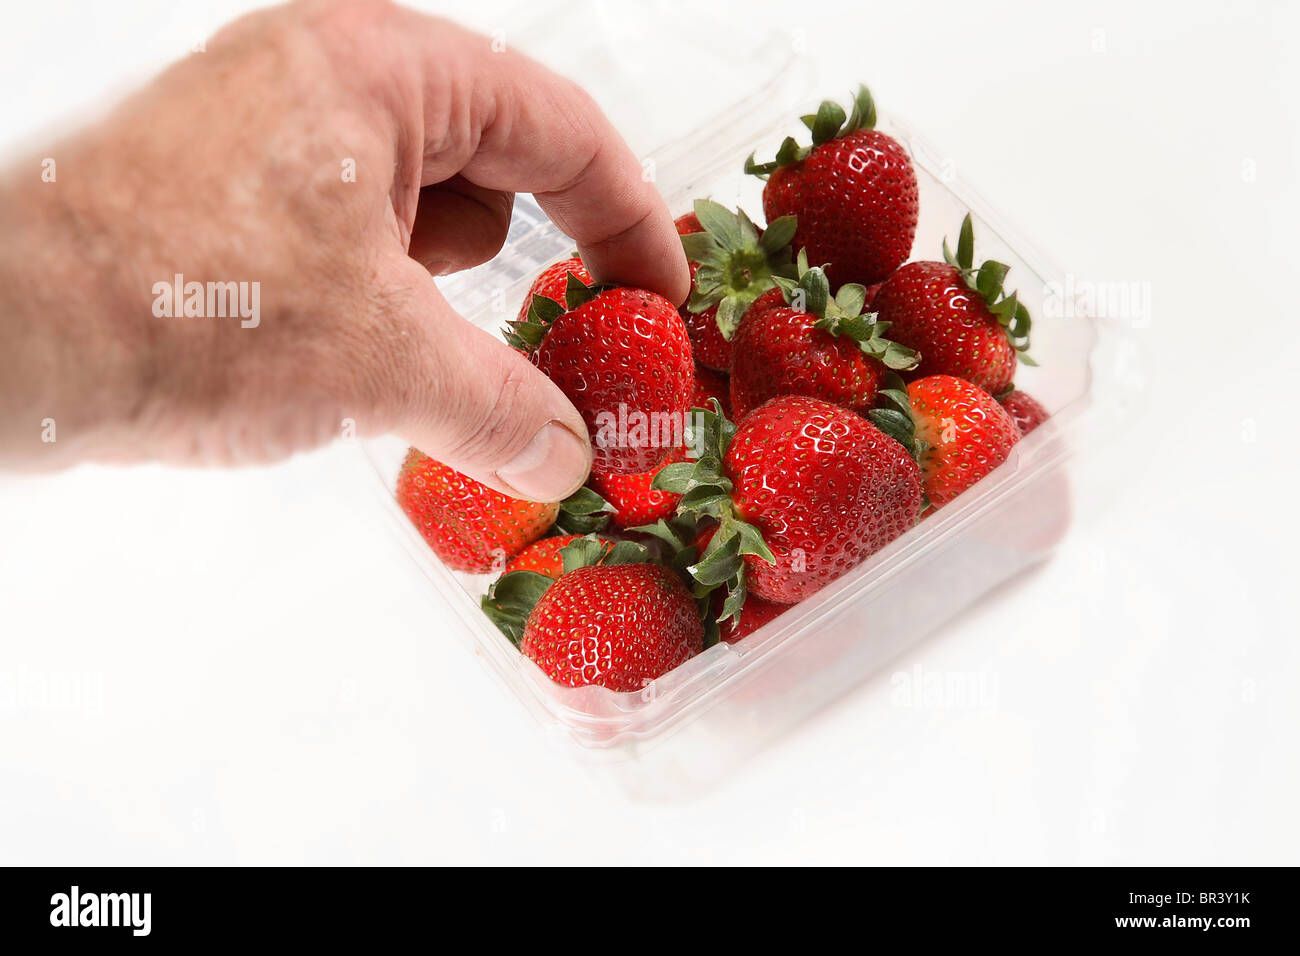 Male hand picking a Strawberry from a punnet or basket of Strawberries - Stock Image